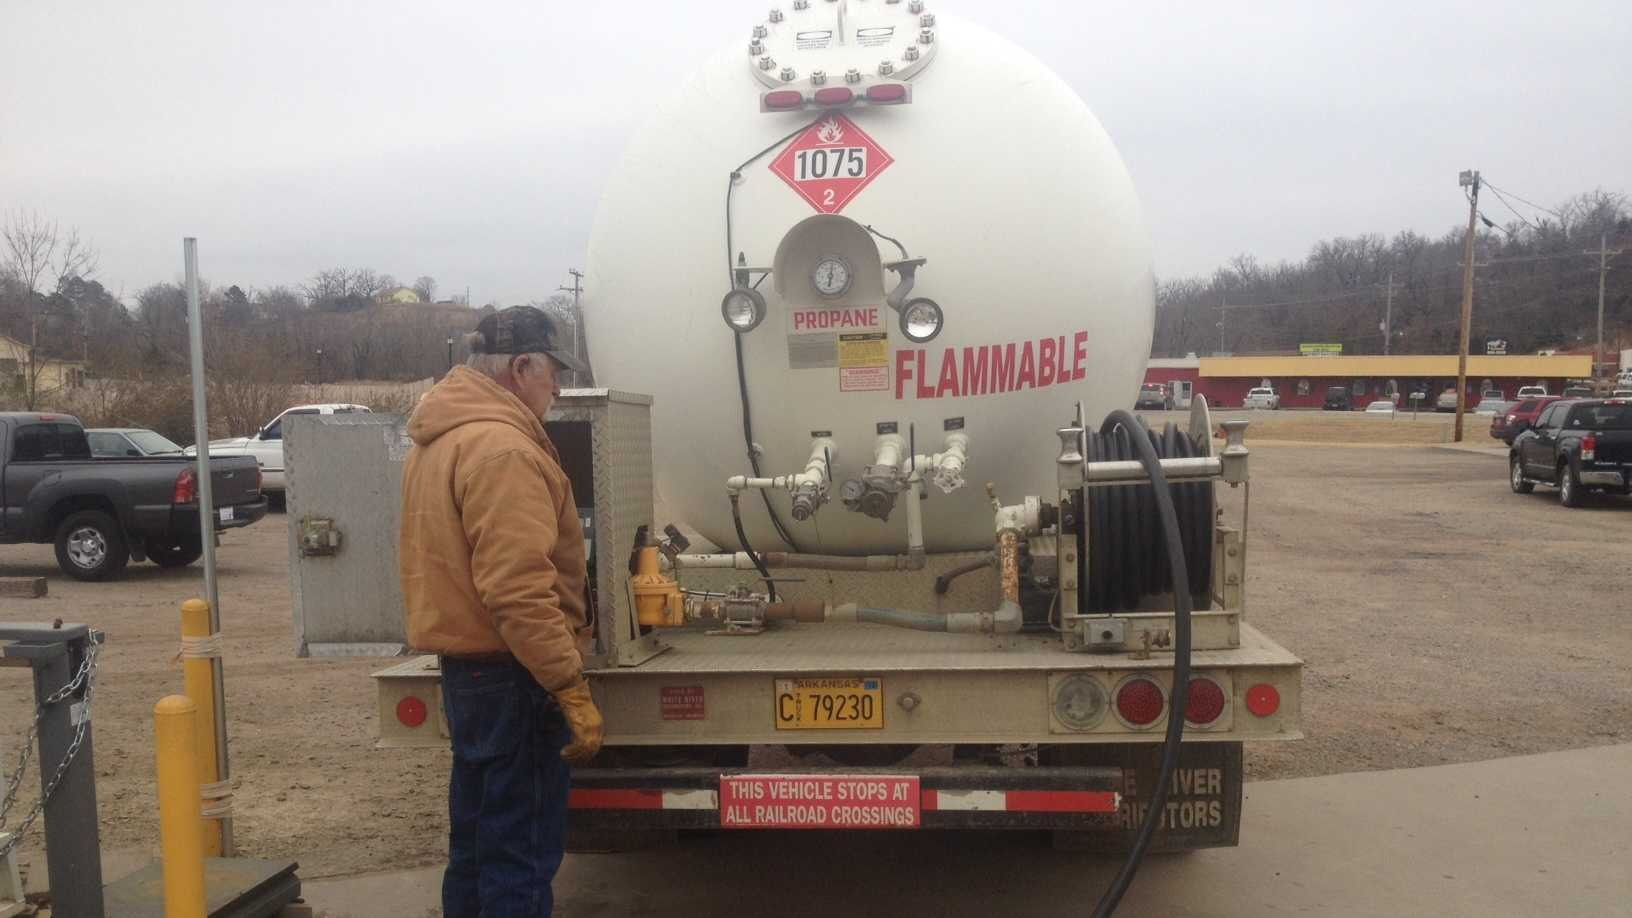 Price of propane high in face of winter weather